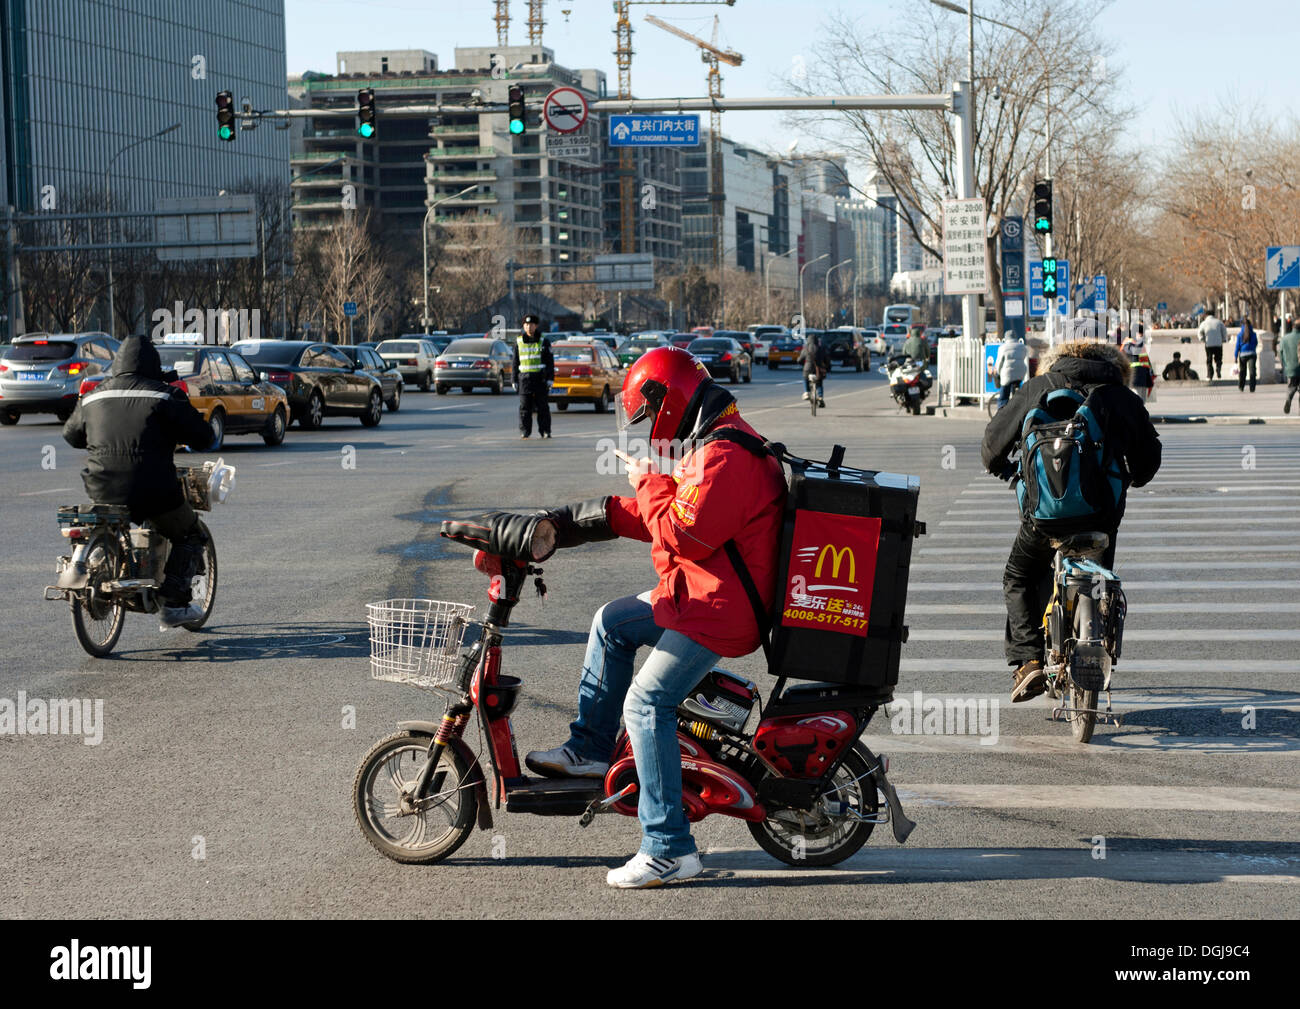 Motorised McDonalds delivery seeking the delivery address on a smartphone at a crossroads, Beijing, China, Asia - Stock Image